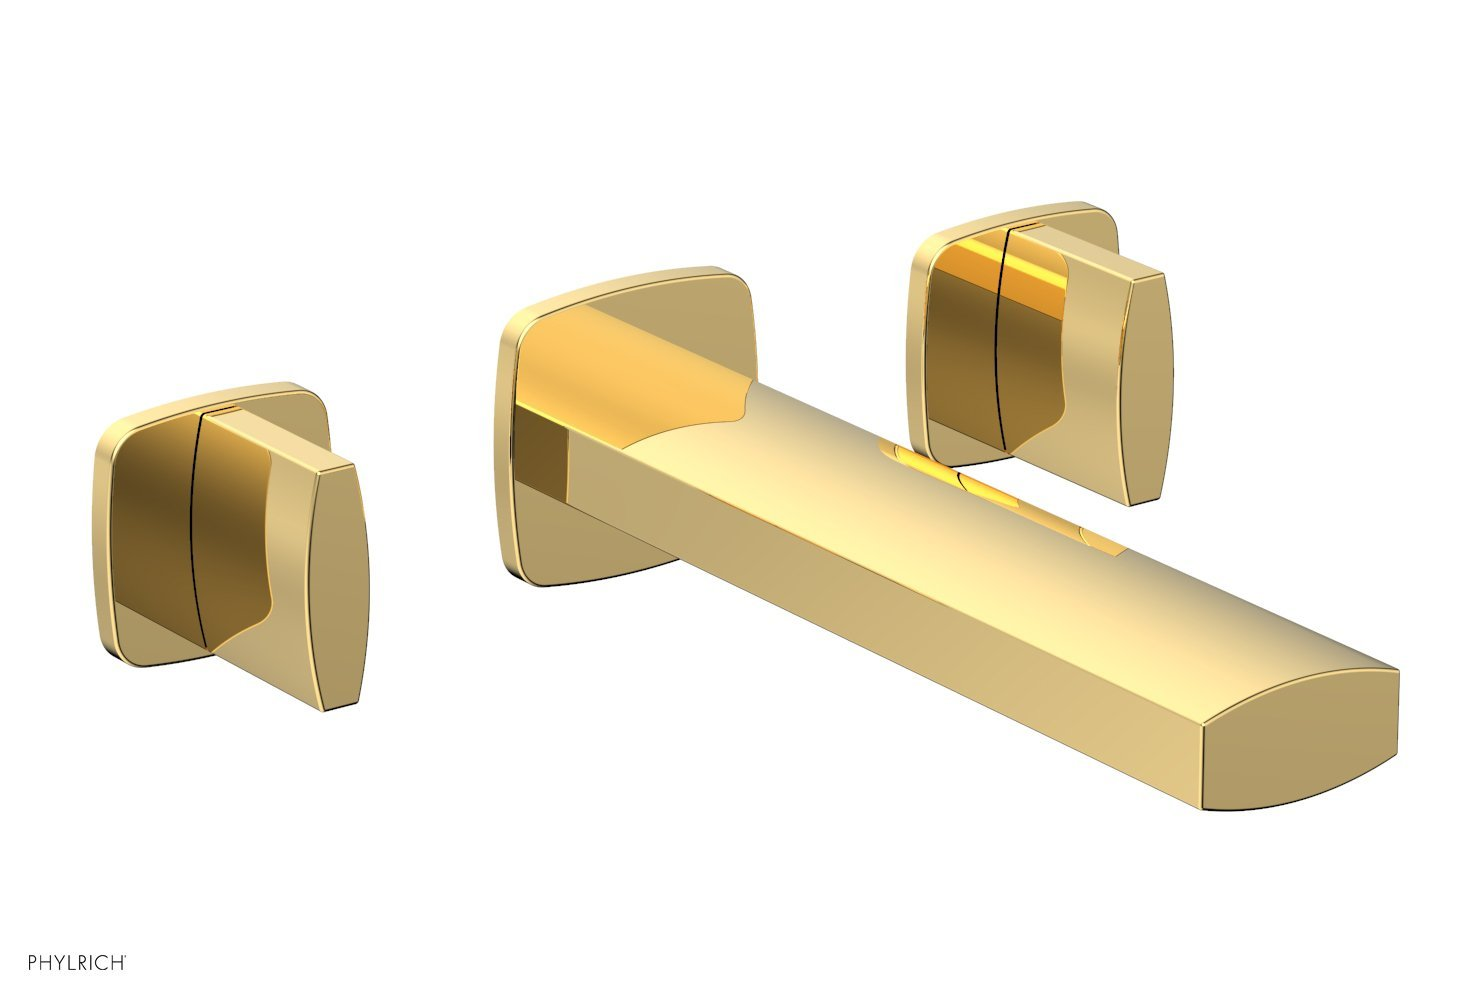 Phylrich 181-11-025 RADI Wall Lavatory Set - Blade Handles - Polished Gold